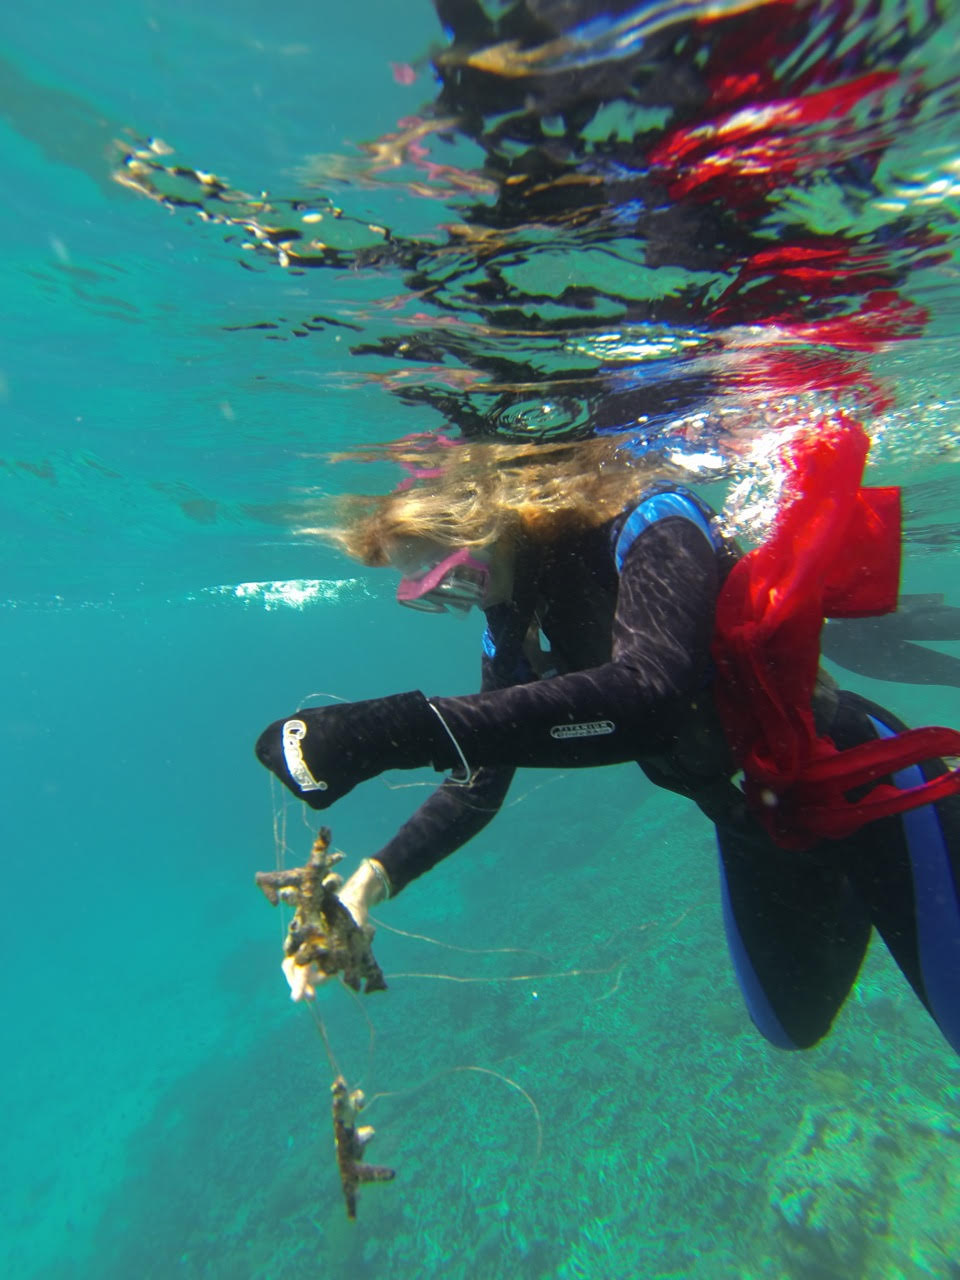 Removing fishing line from coral. Photo by Pam Longobardi